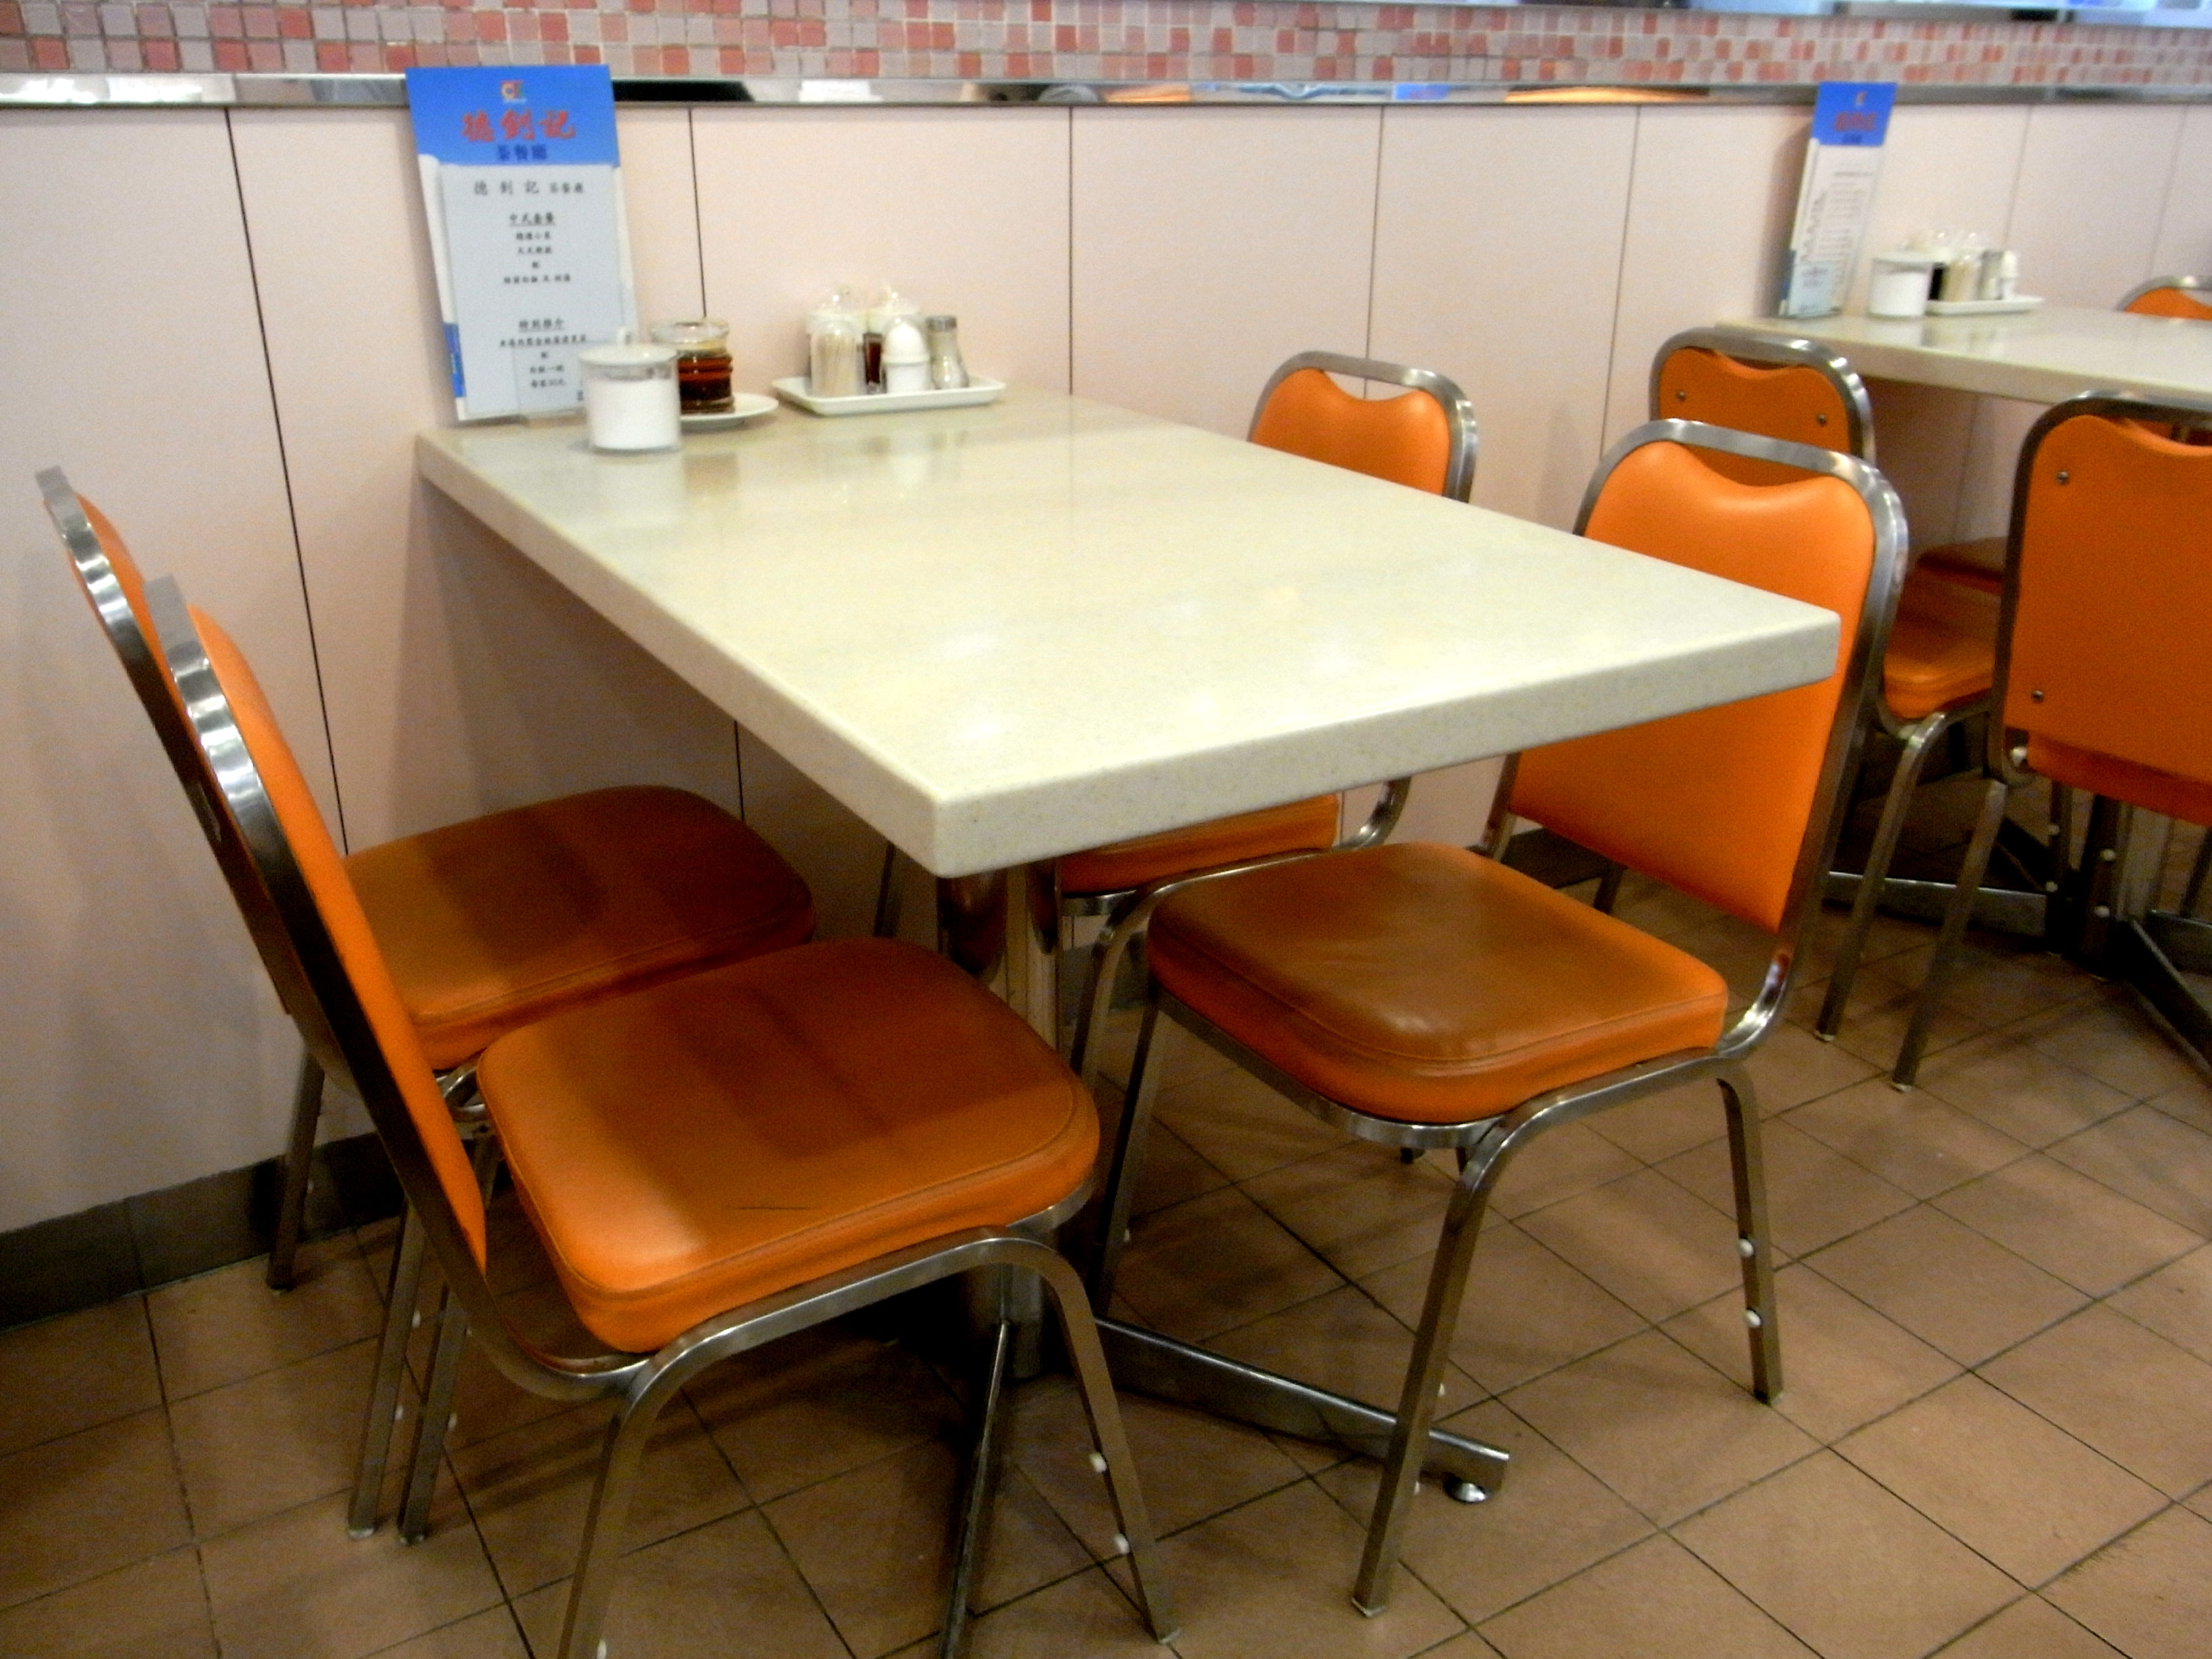 Used Restaurant Tables And Chairs Restaurant Chairs And Tables Home Design And Decor Reviews